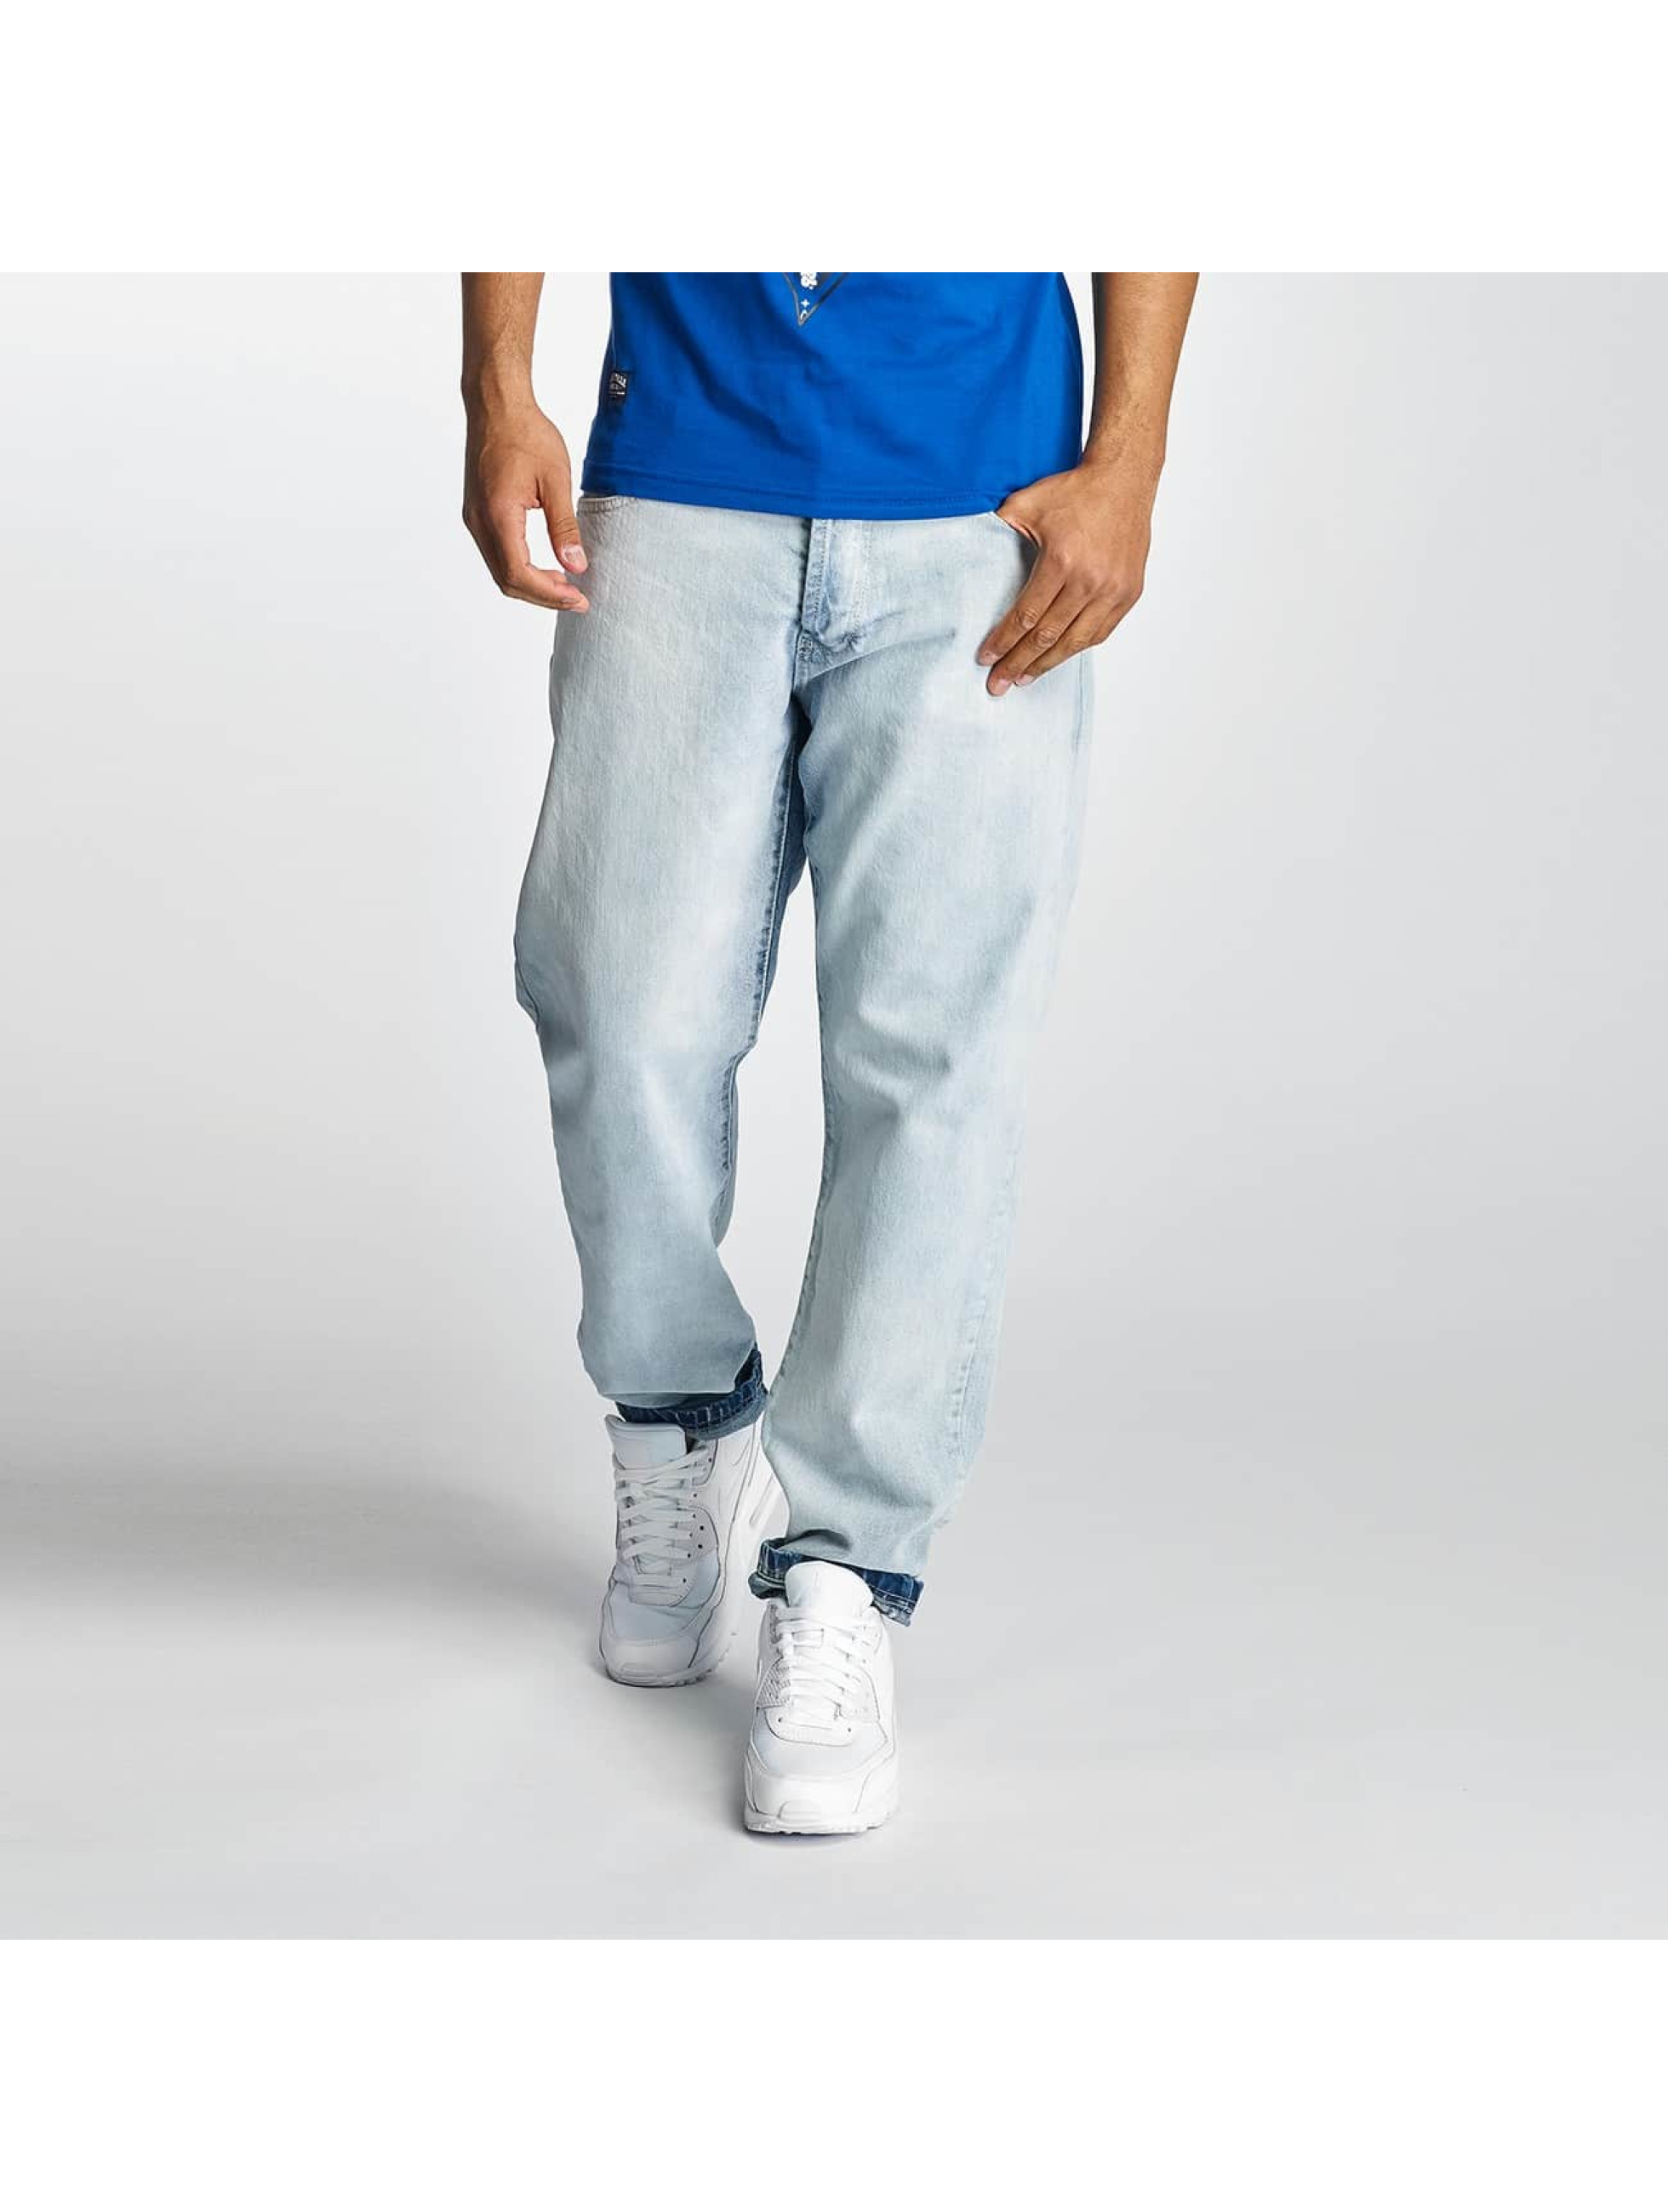 Thug Life / Carrot Fit Jeans Washed in blue W 38 L 34